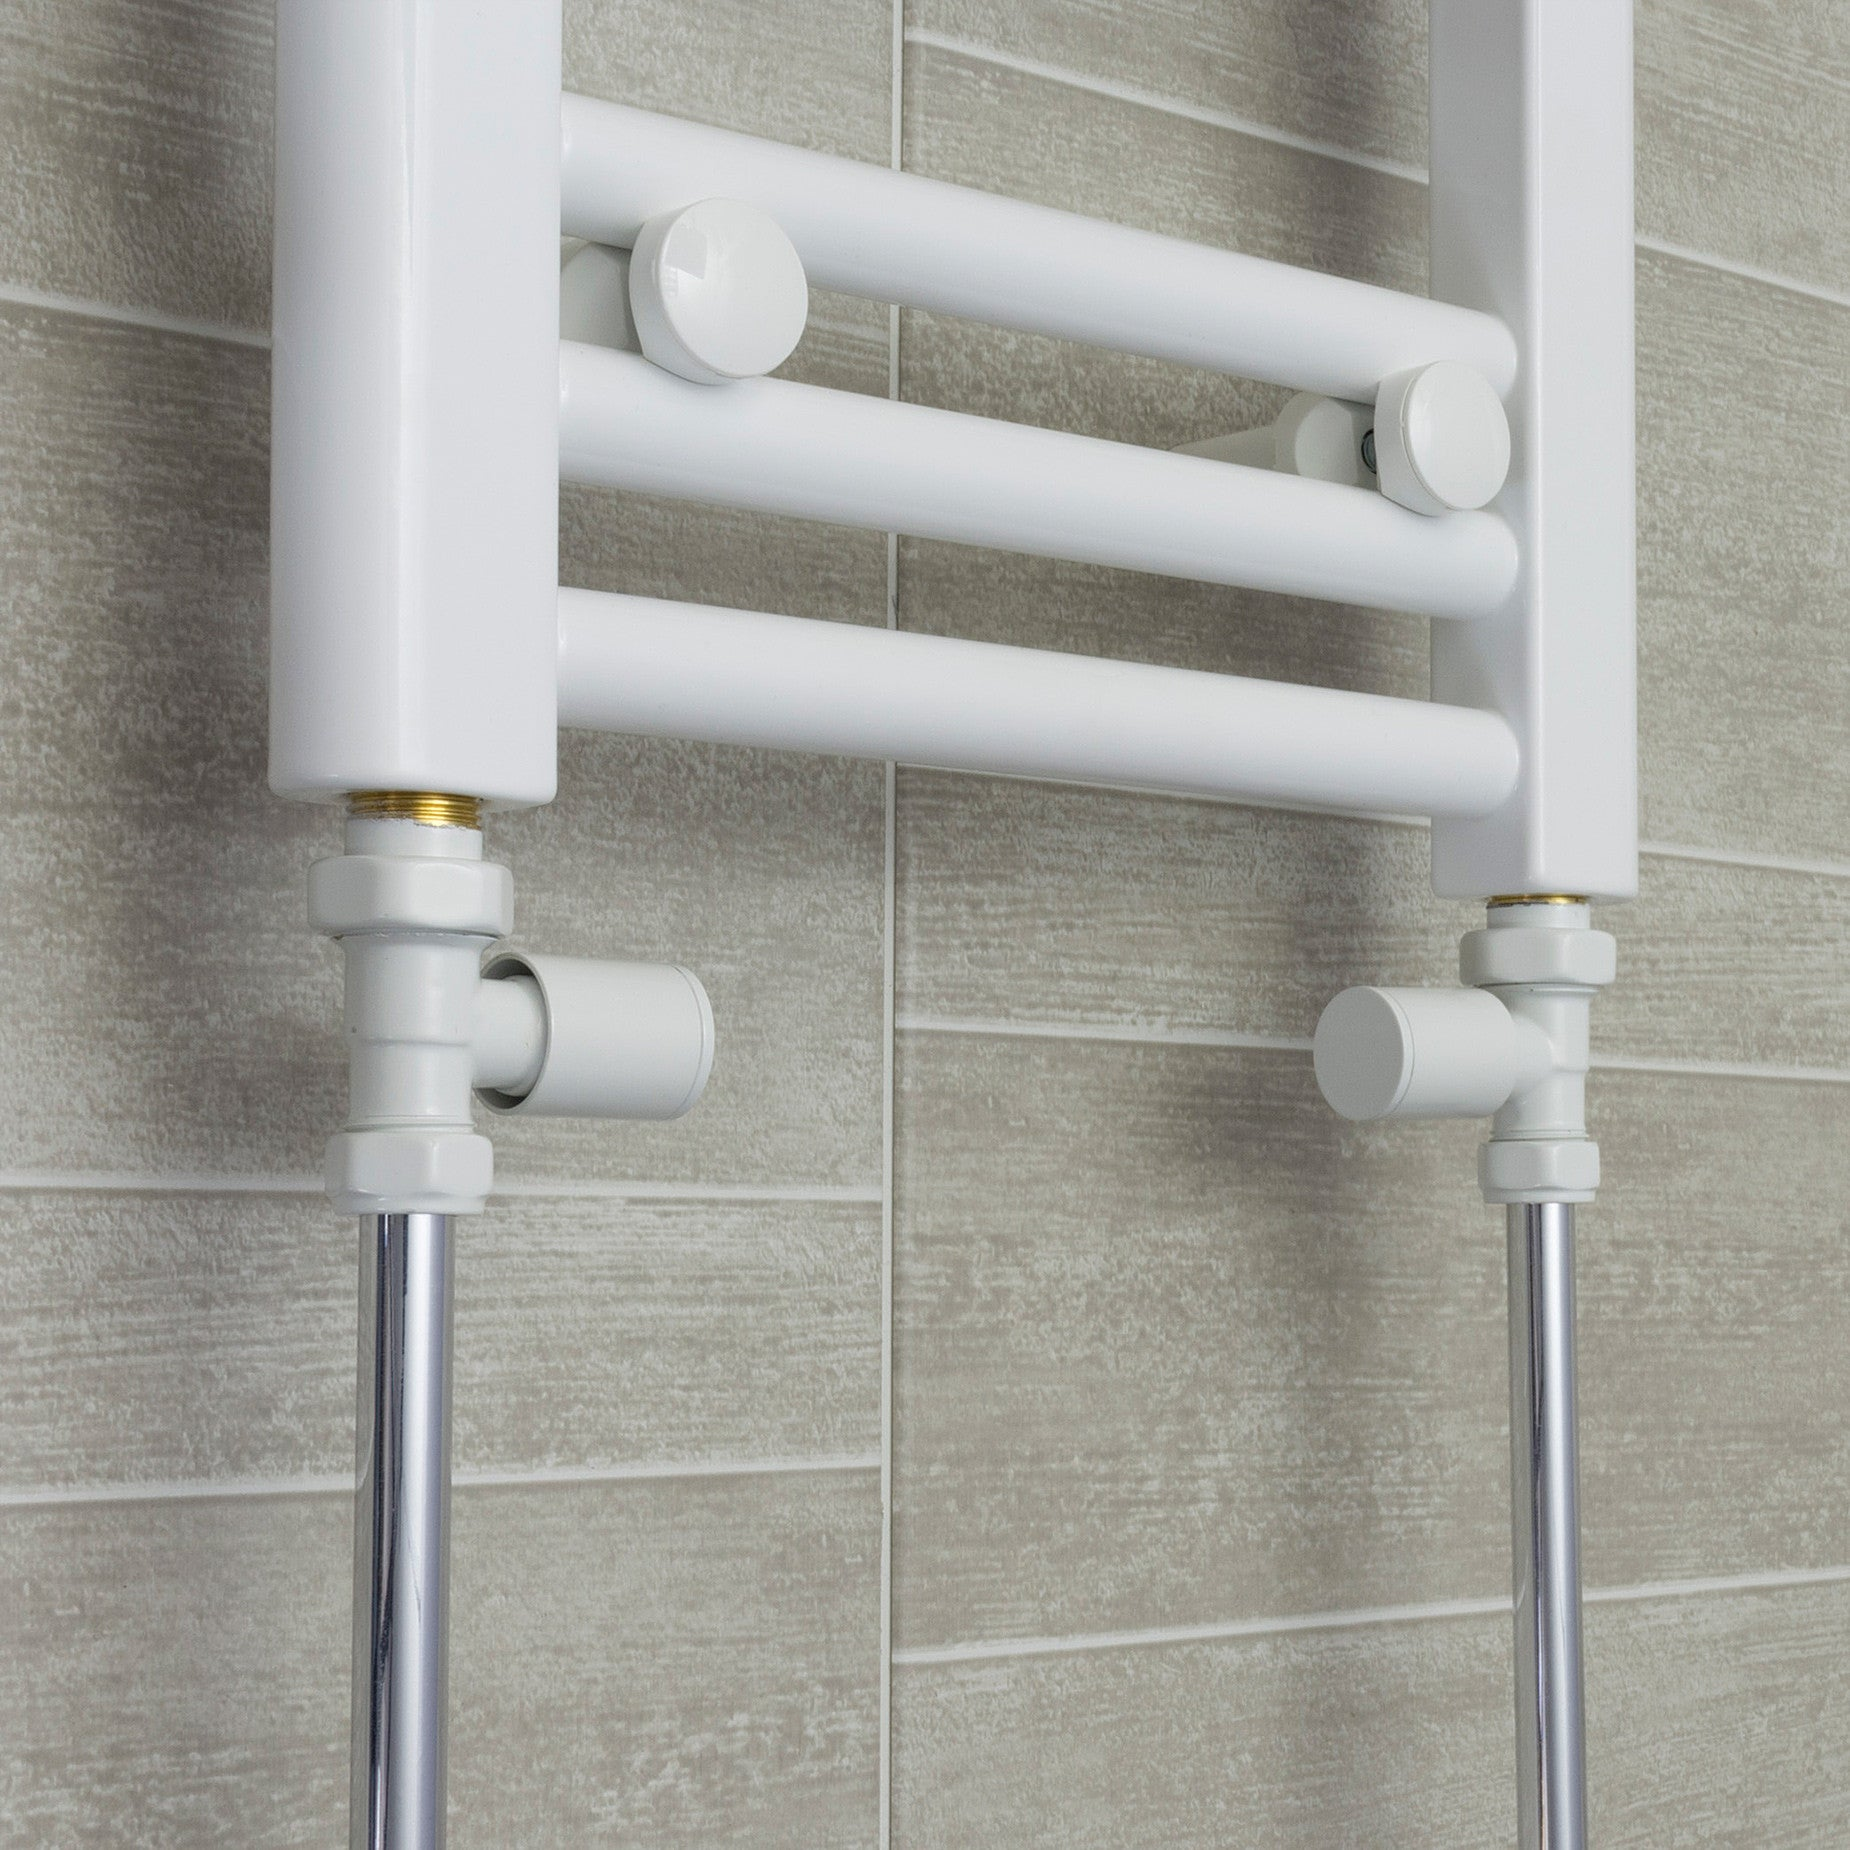 700mm Wide 1700mm High White Towel Rail Radiator With Straight Valve